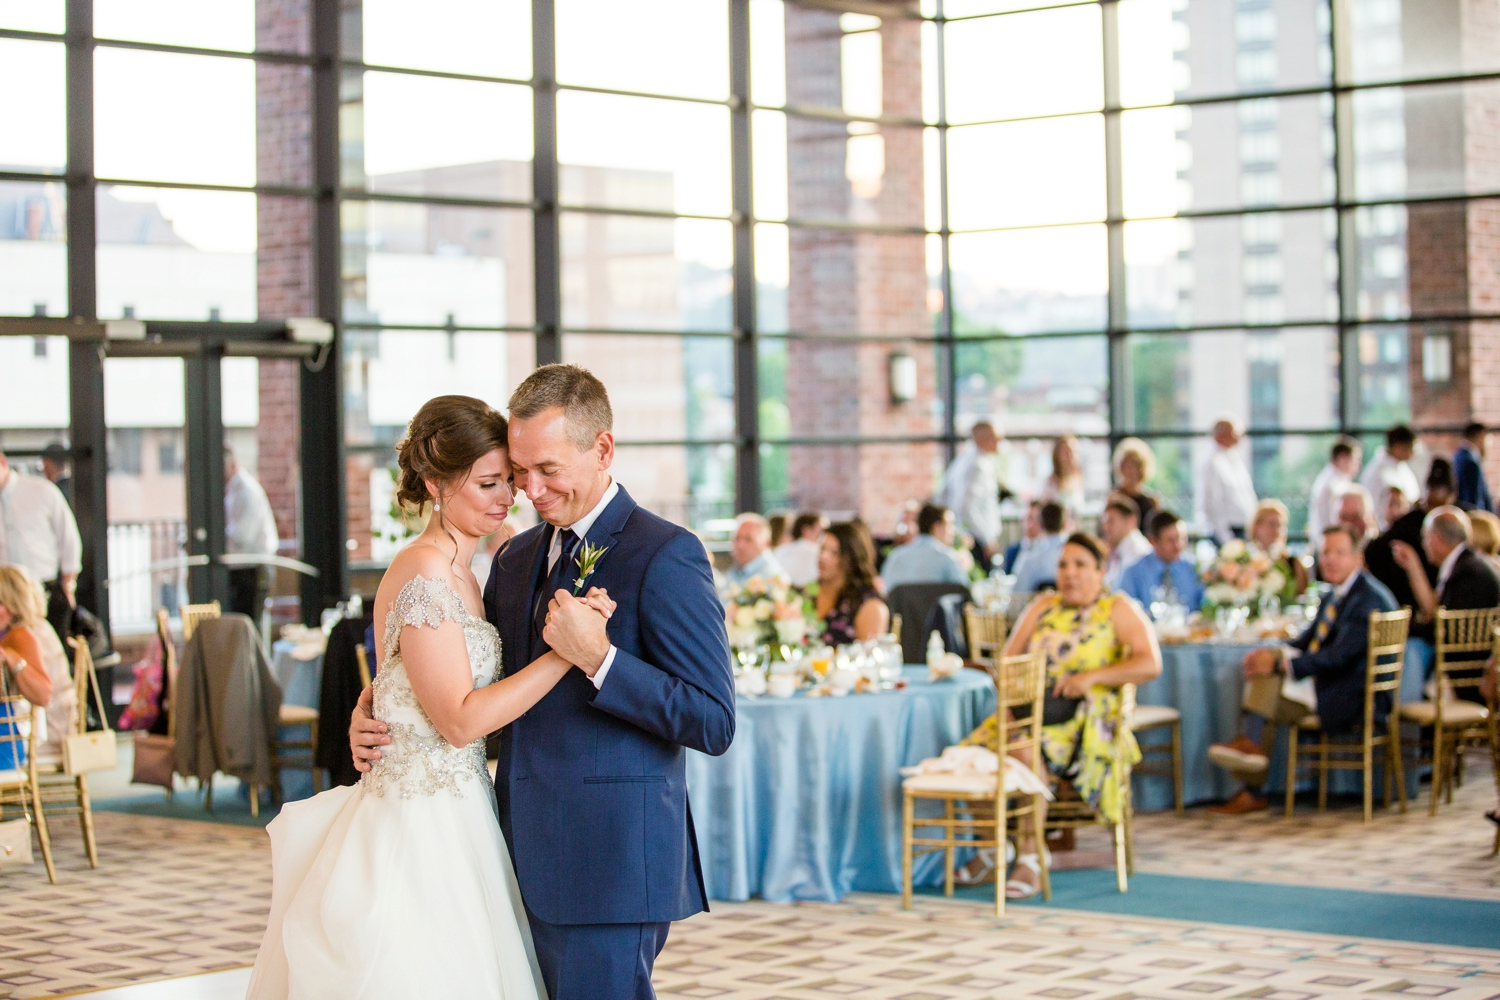 duquesne university power center wedding photos, embassy suites downtown pittsburgh wedding photos, pittsburgh wedding photographer